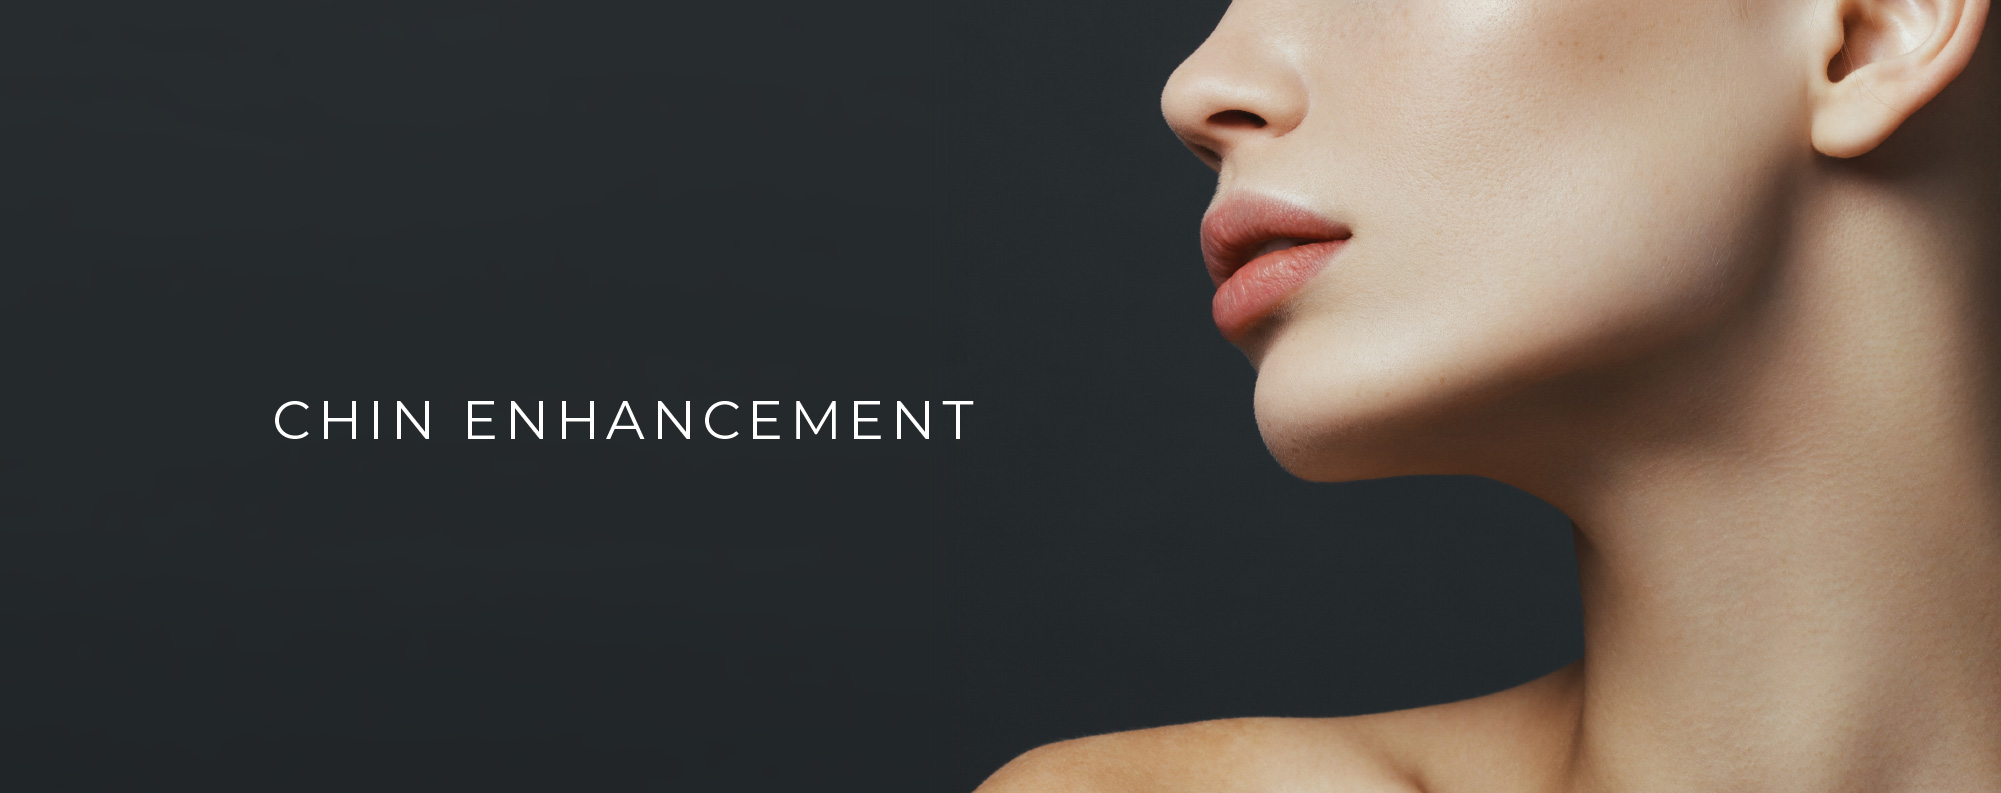 chin fillers Singapore